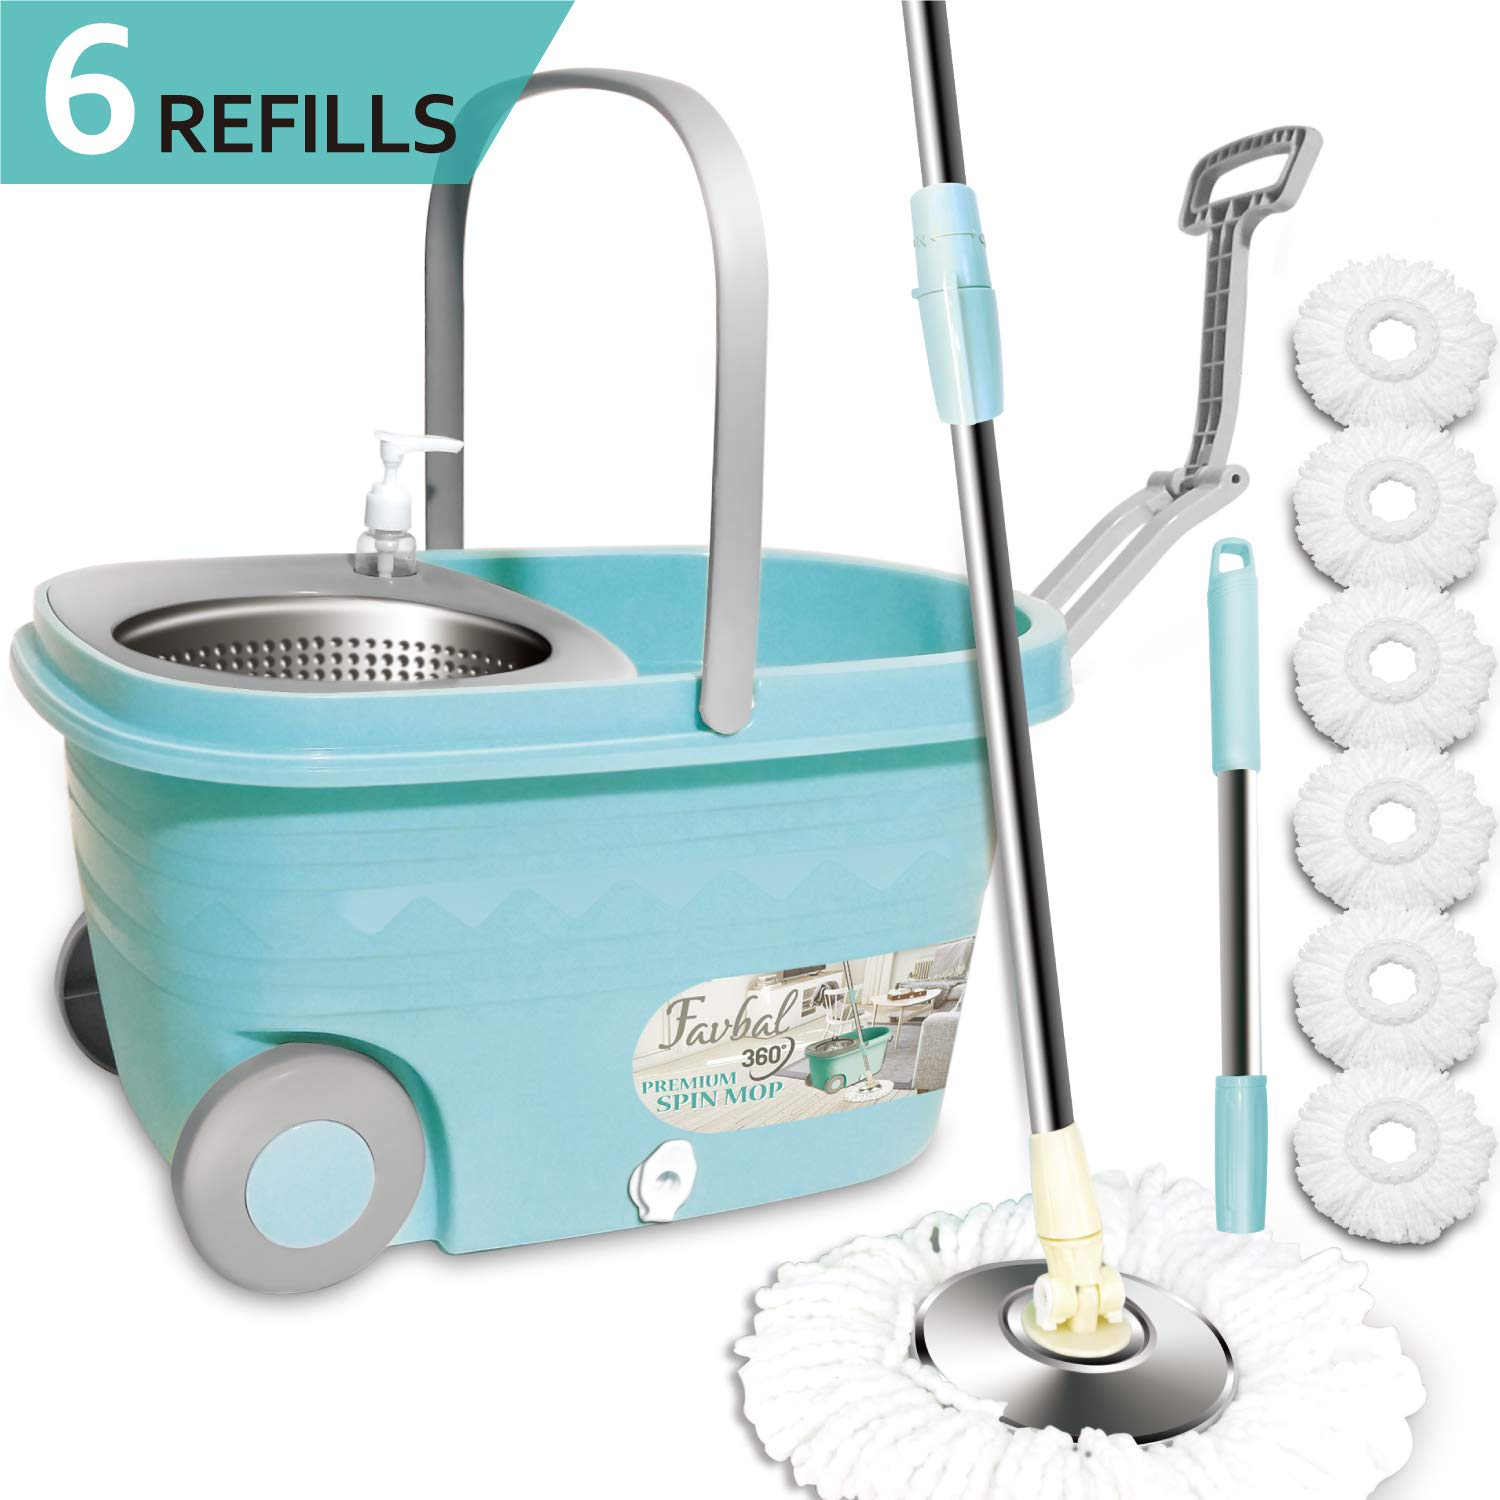 Spin Mop Floor Cleaning Supplies - Favbal Stainless Steel Spinning Mop and Bucket with Wringer Home Cleaning Kit for Hardwood Floors and Tiles